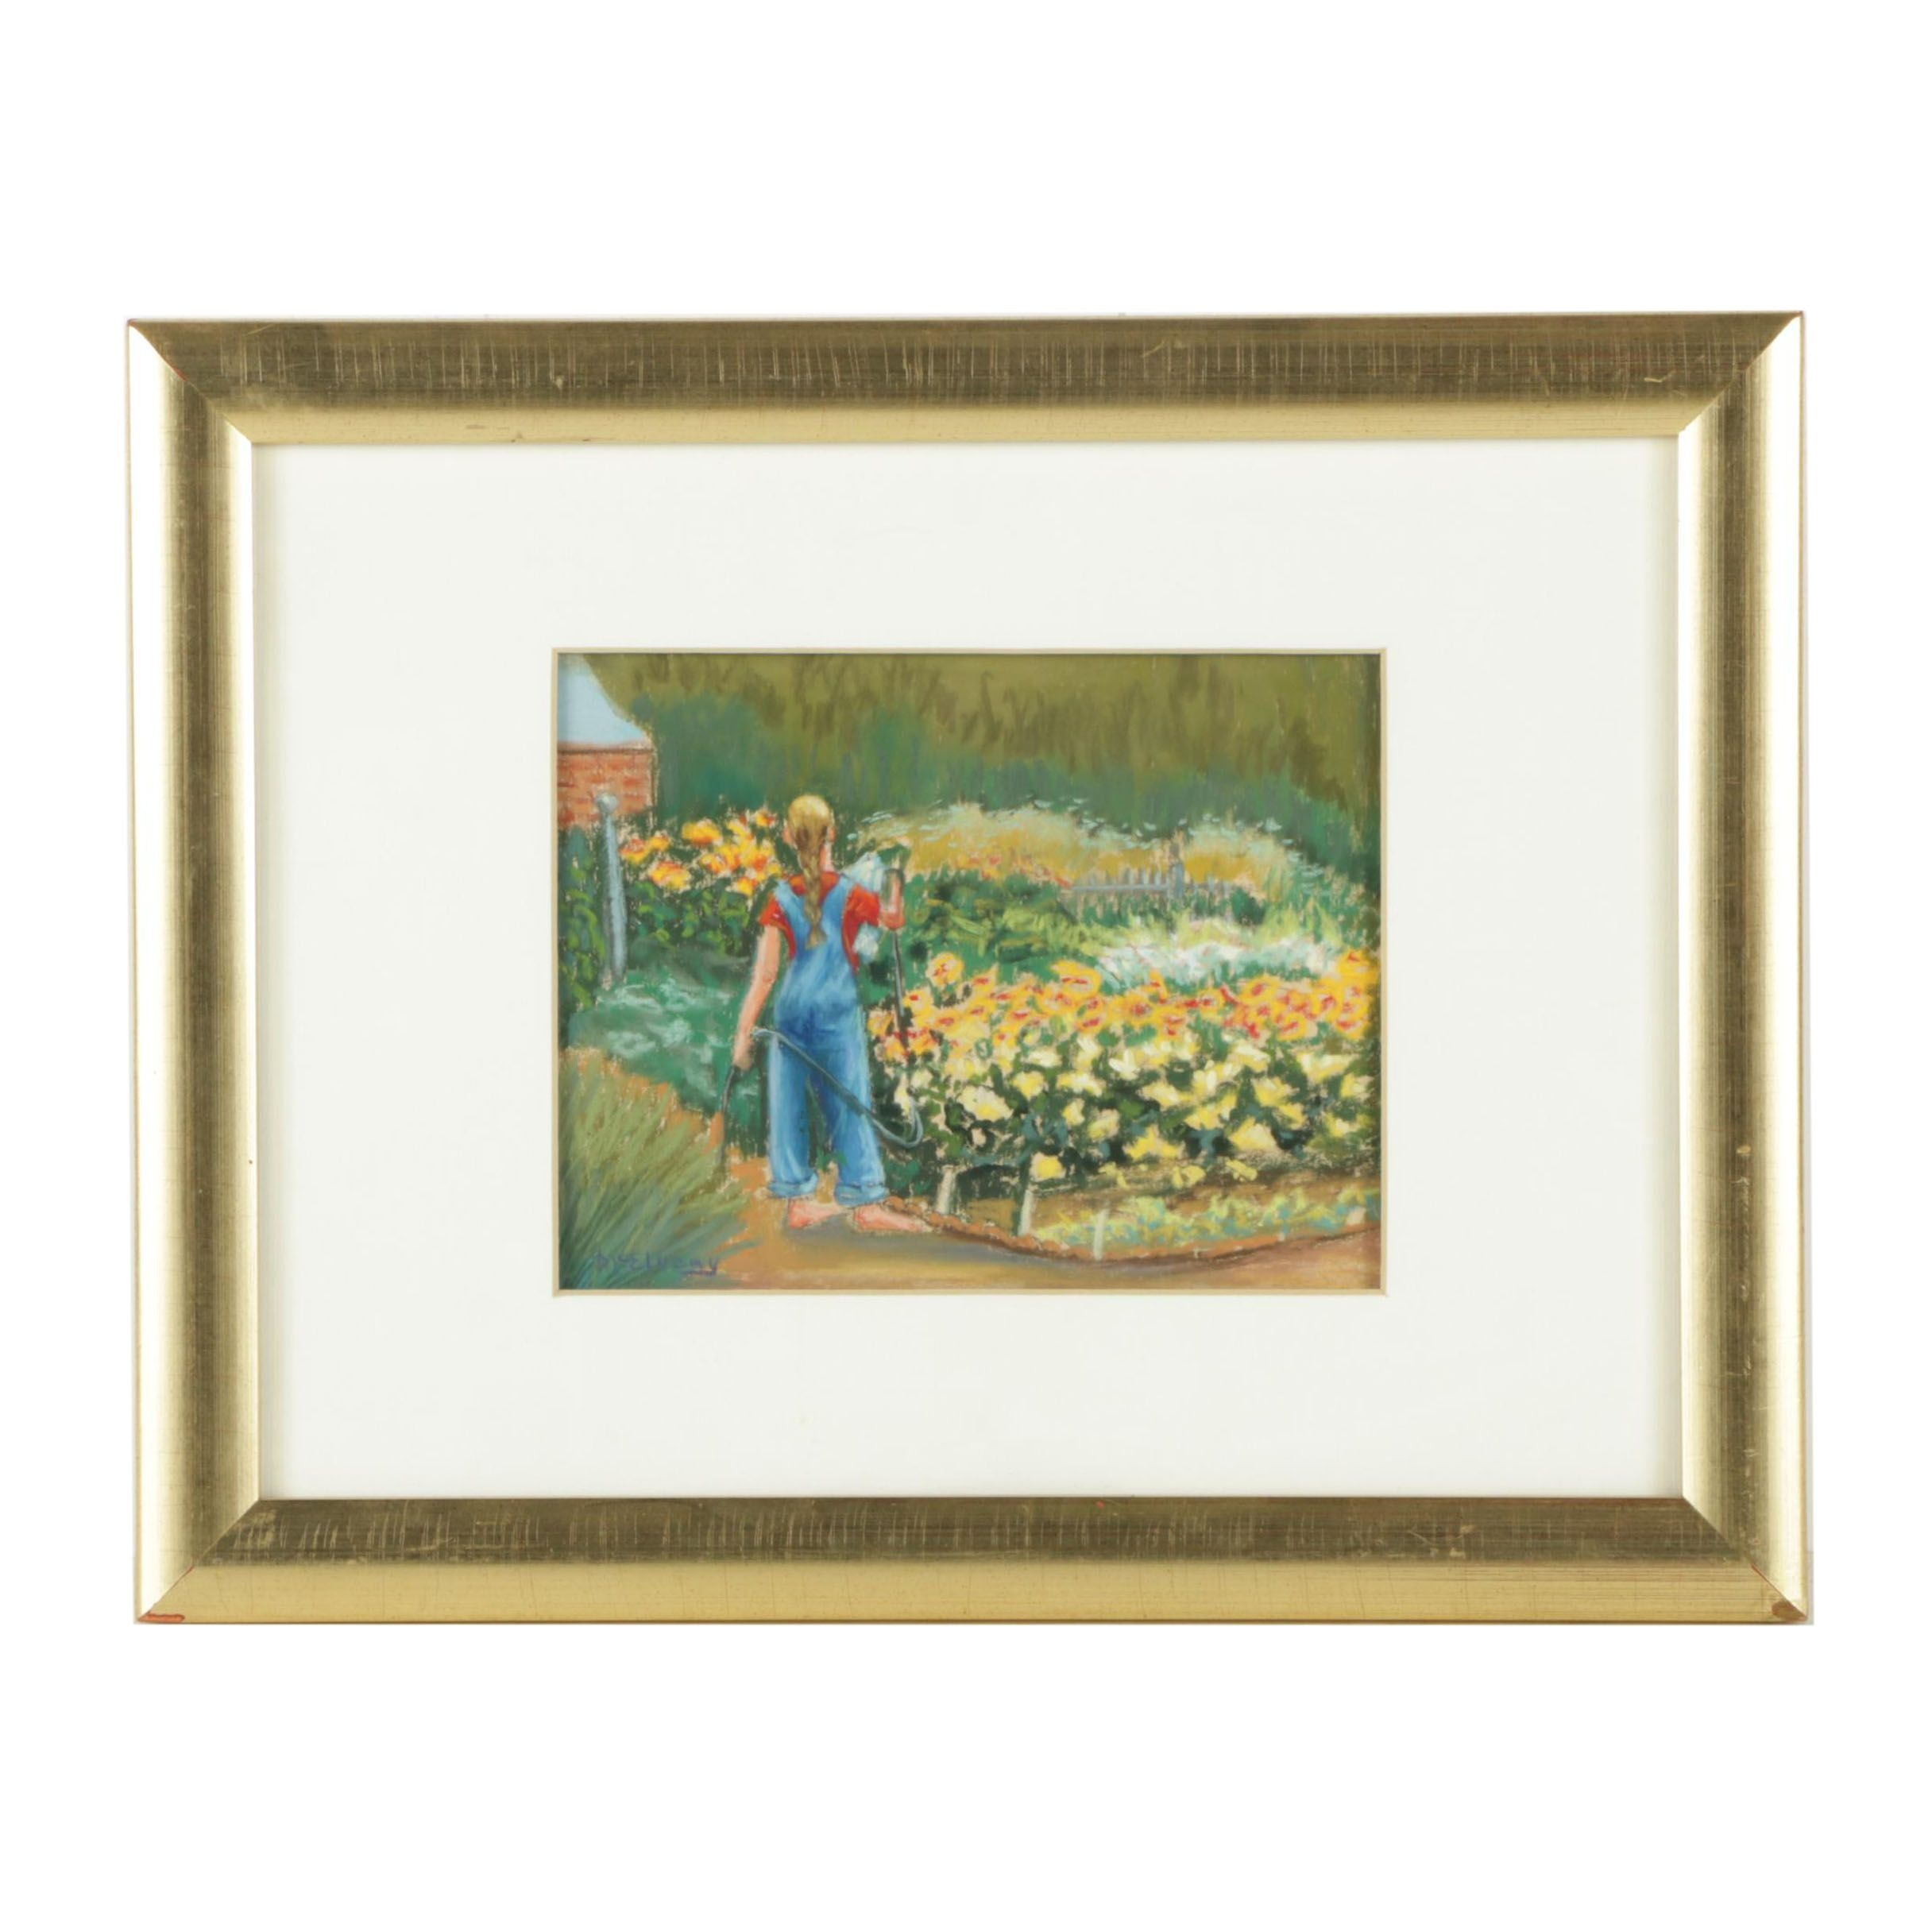 Jane McElvany Coonce Pastel Drawing of a Gardener